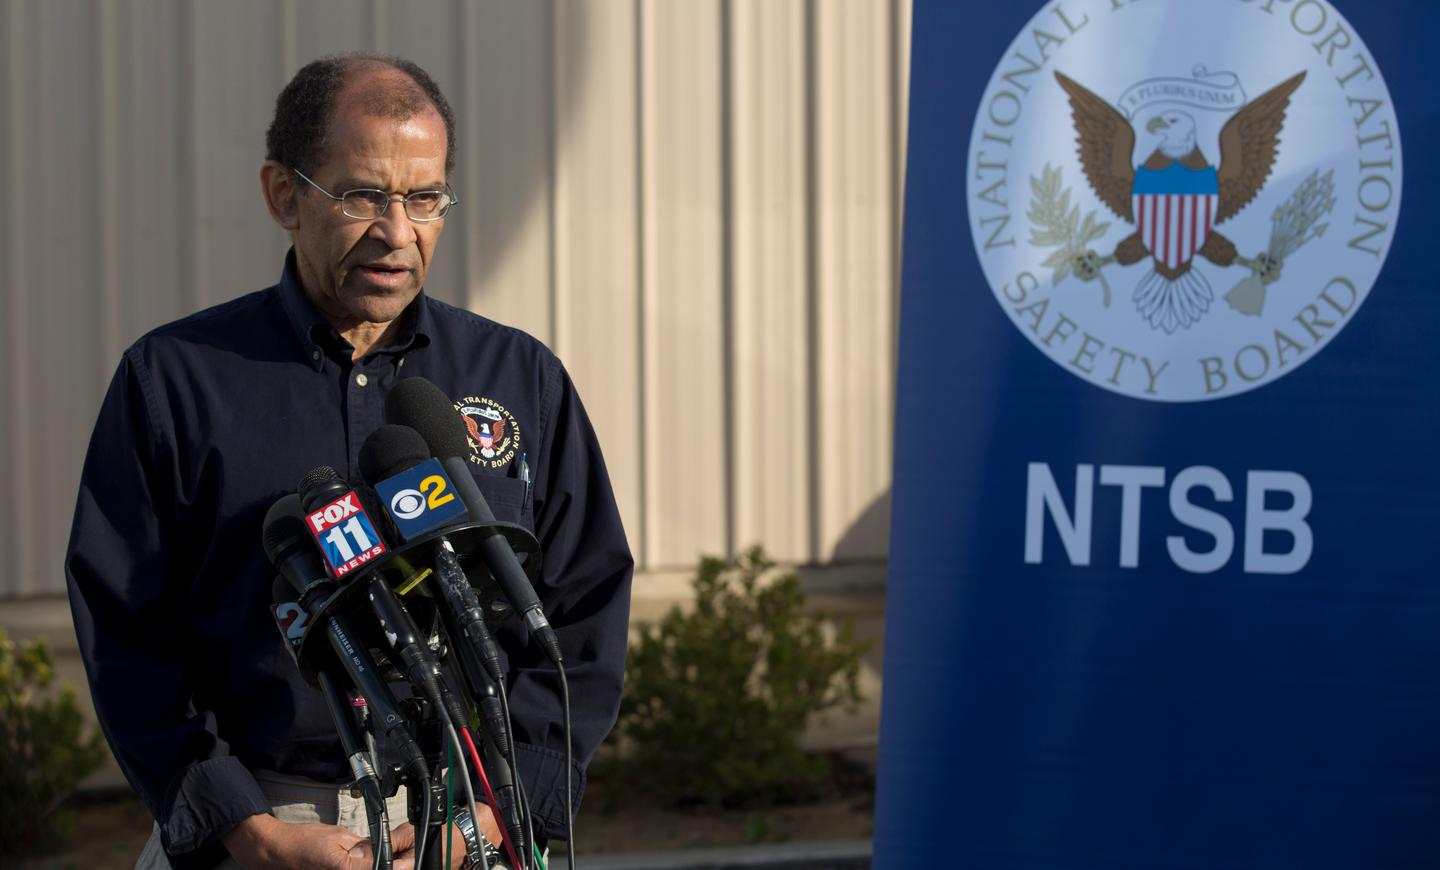 Acting Chairman Christopher A. Hart of the US National Transportation Safety Board briefing the press (image: NTSB)